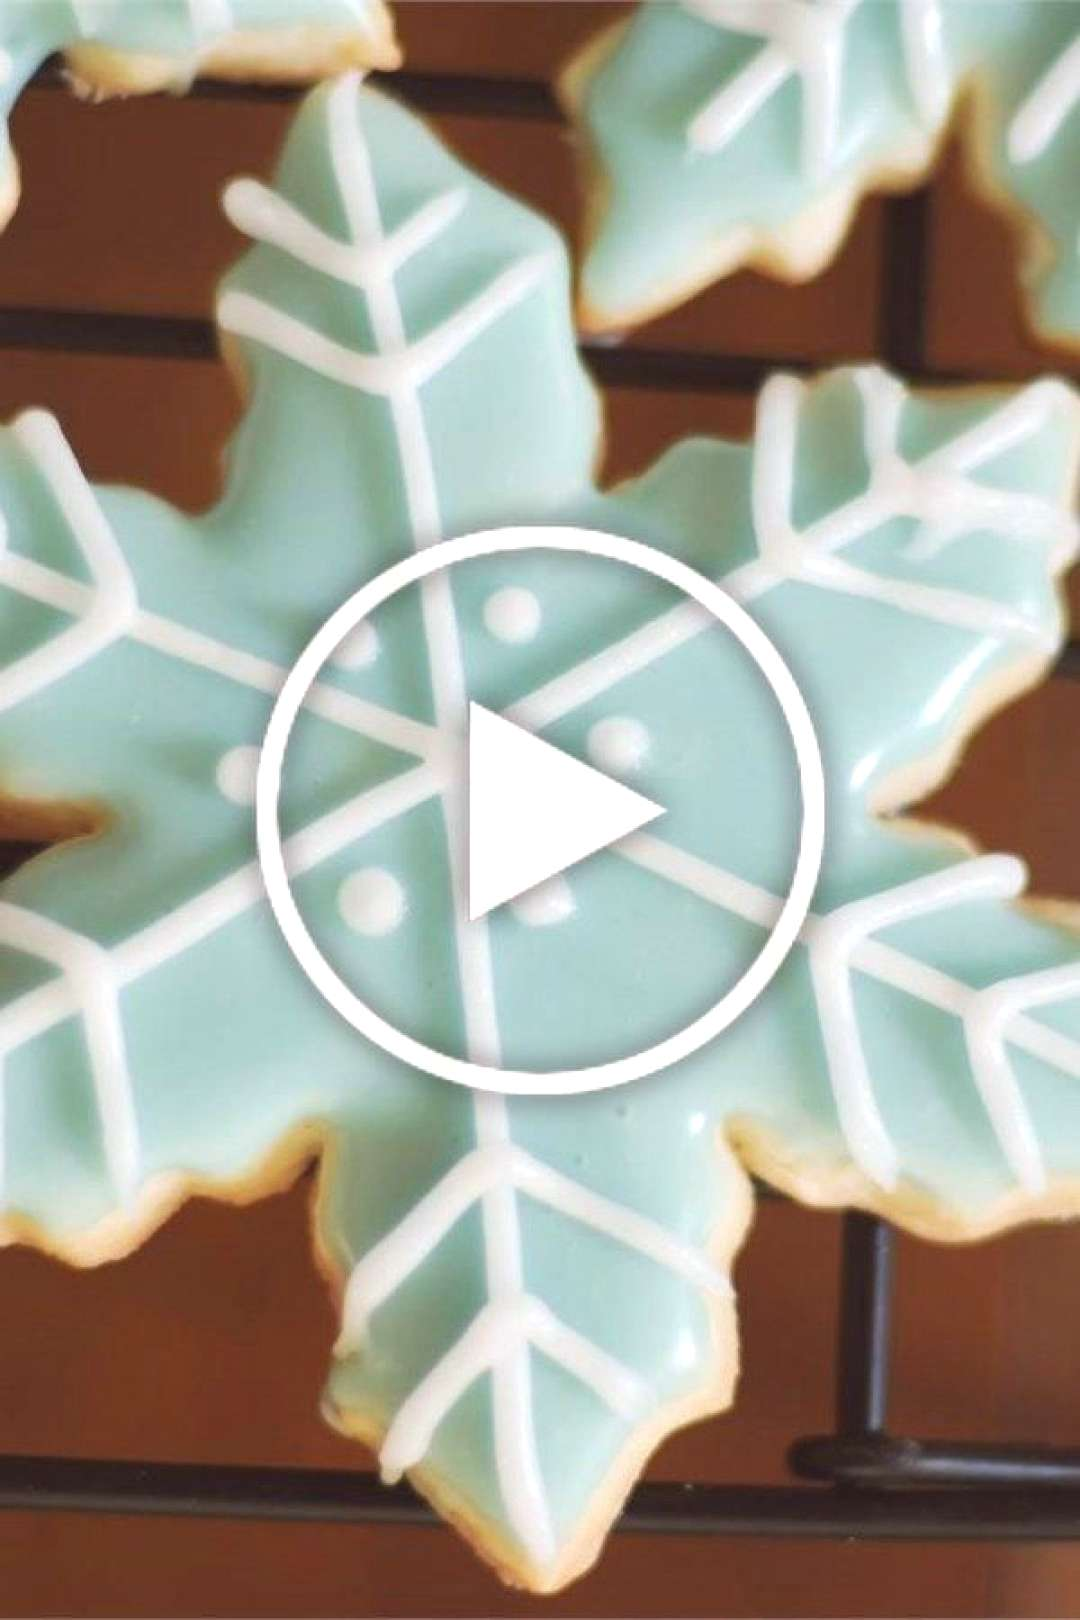 Sugar Cookie Icing | Absolutely fabulous sugar cookie icing! This icing recipe is the Holy Grail of